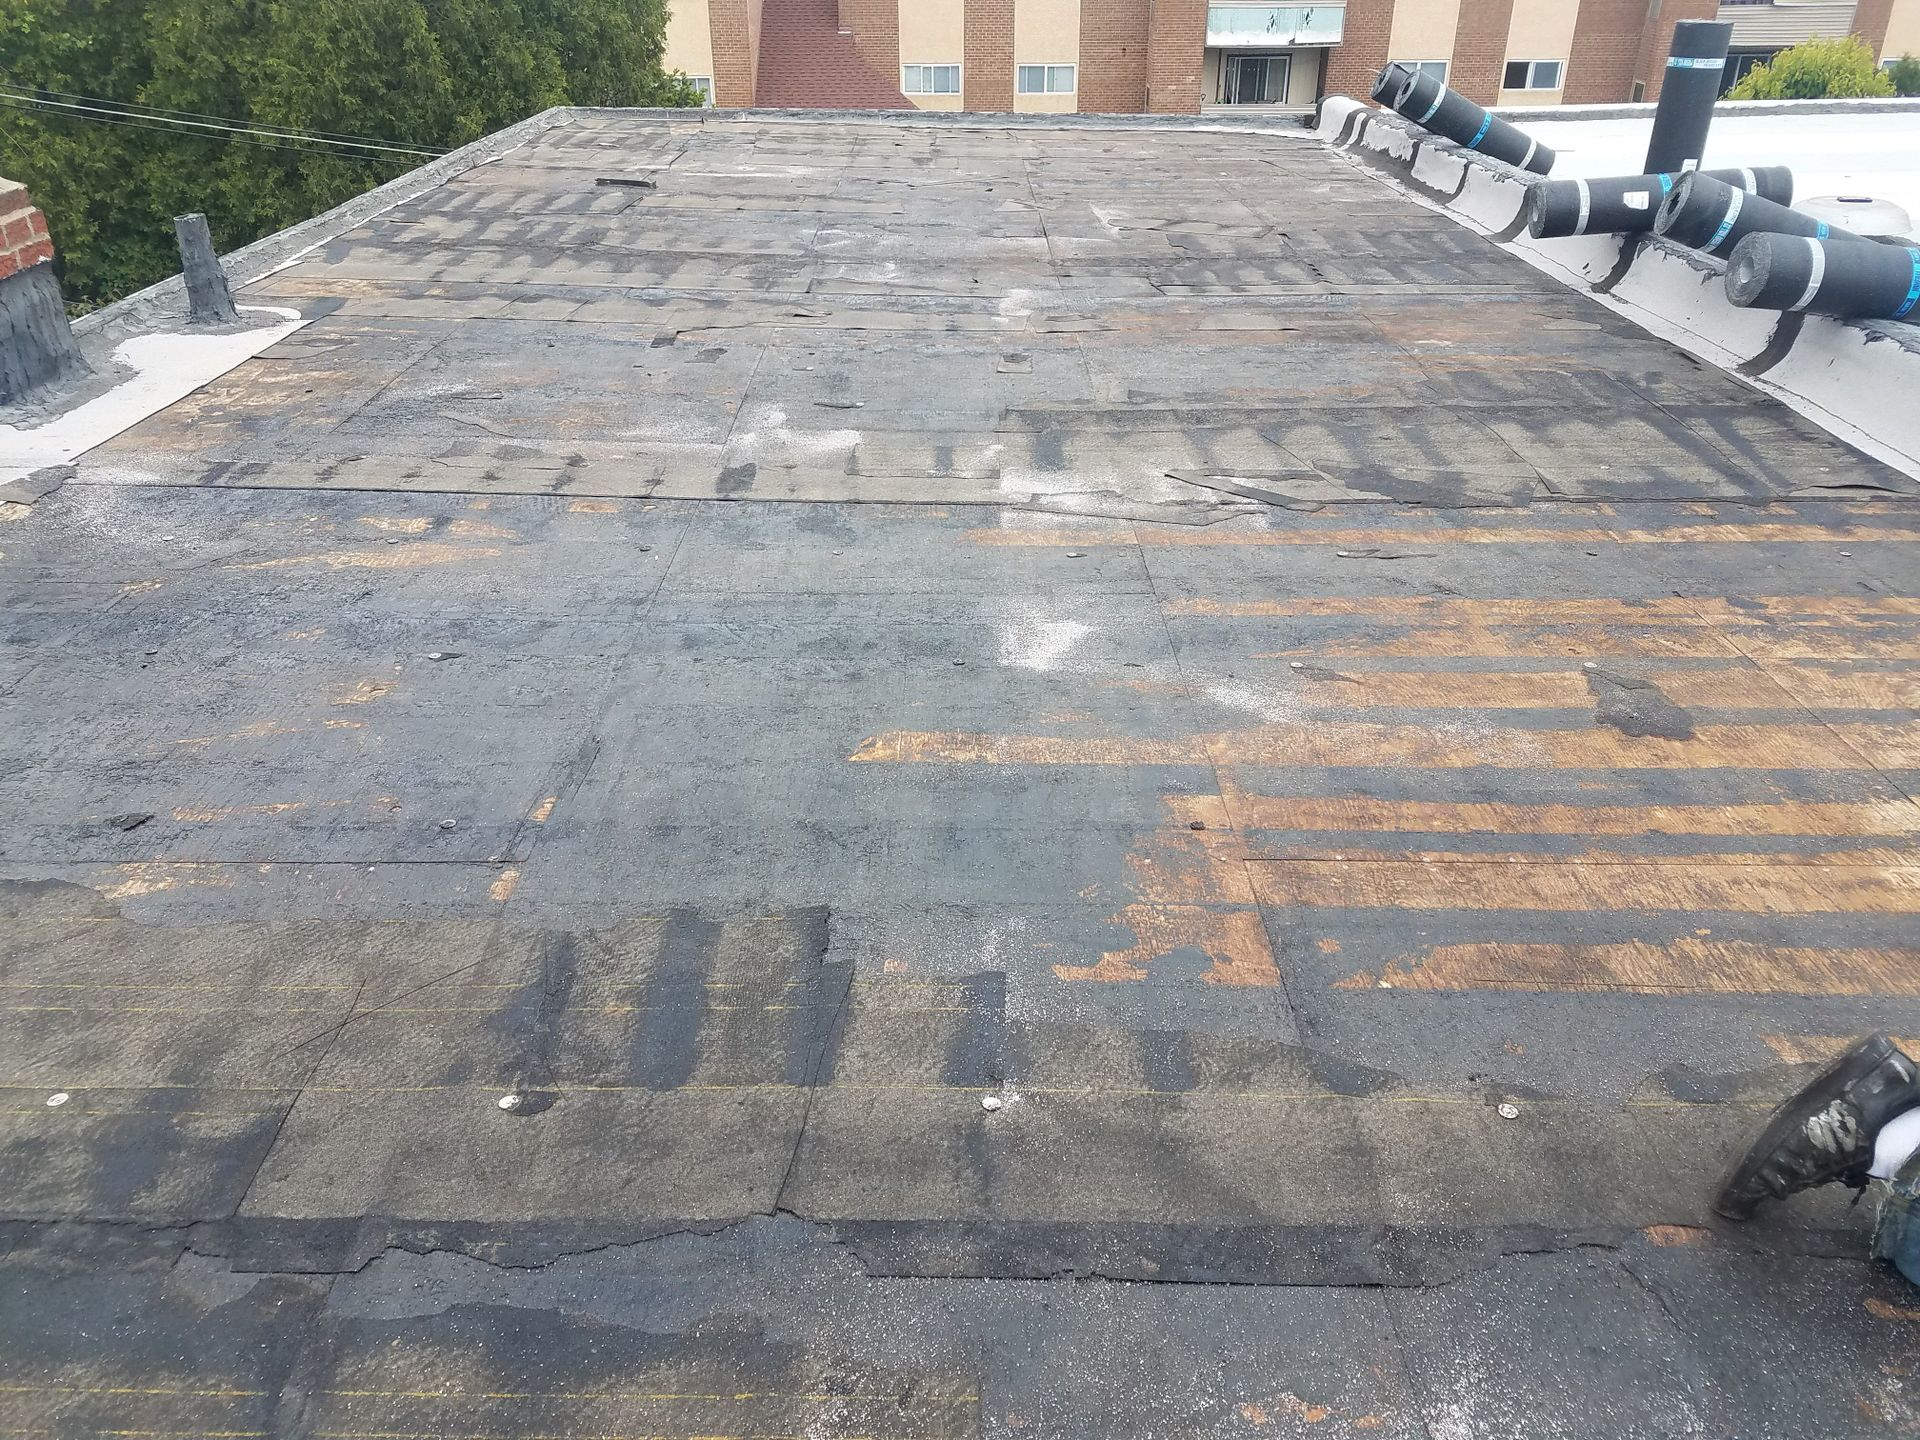 Roofing | Rubber and Shingle Roofs | Philadelphia, PA